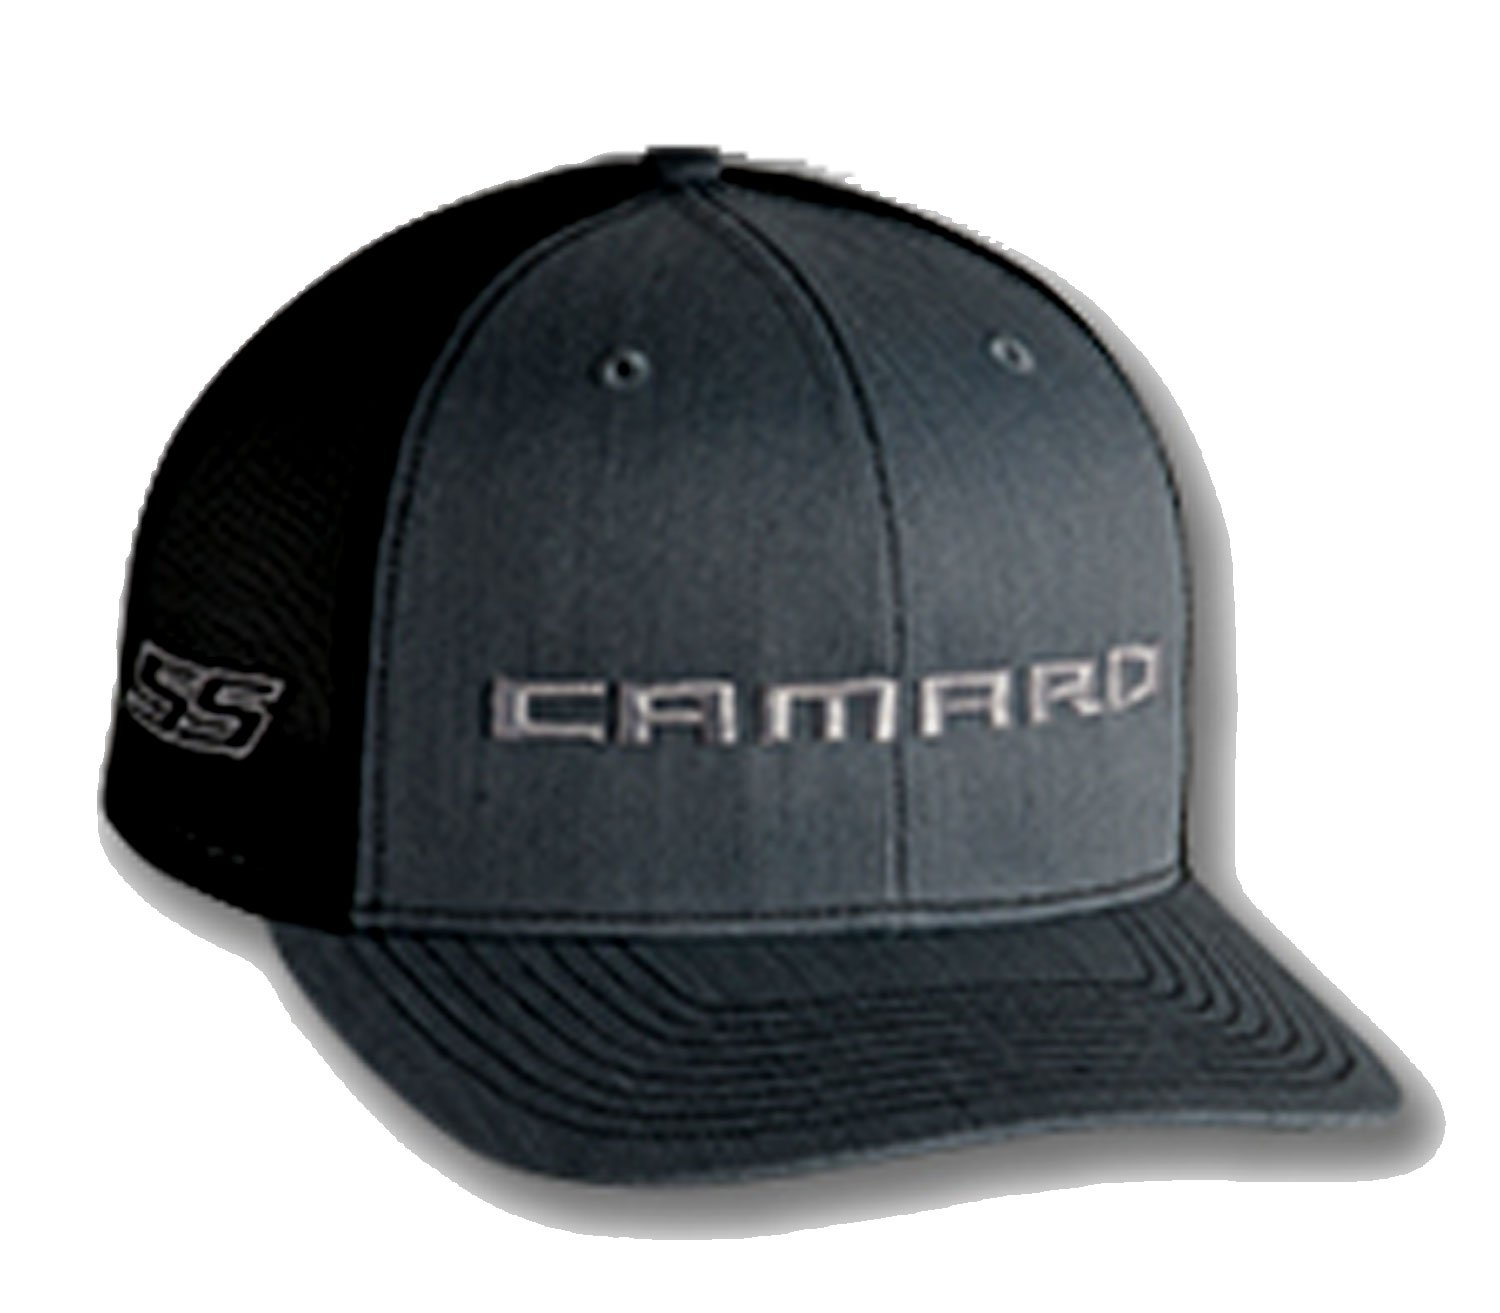 Gregs Automotive Chevrolet Chevy Camaro SS Trucker Hat Cap Red Bundle Includes 1 Hat and 1 Driving Style Decal